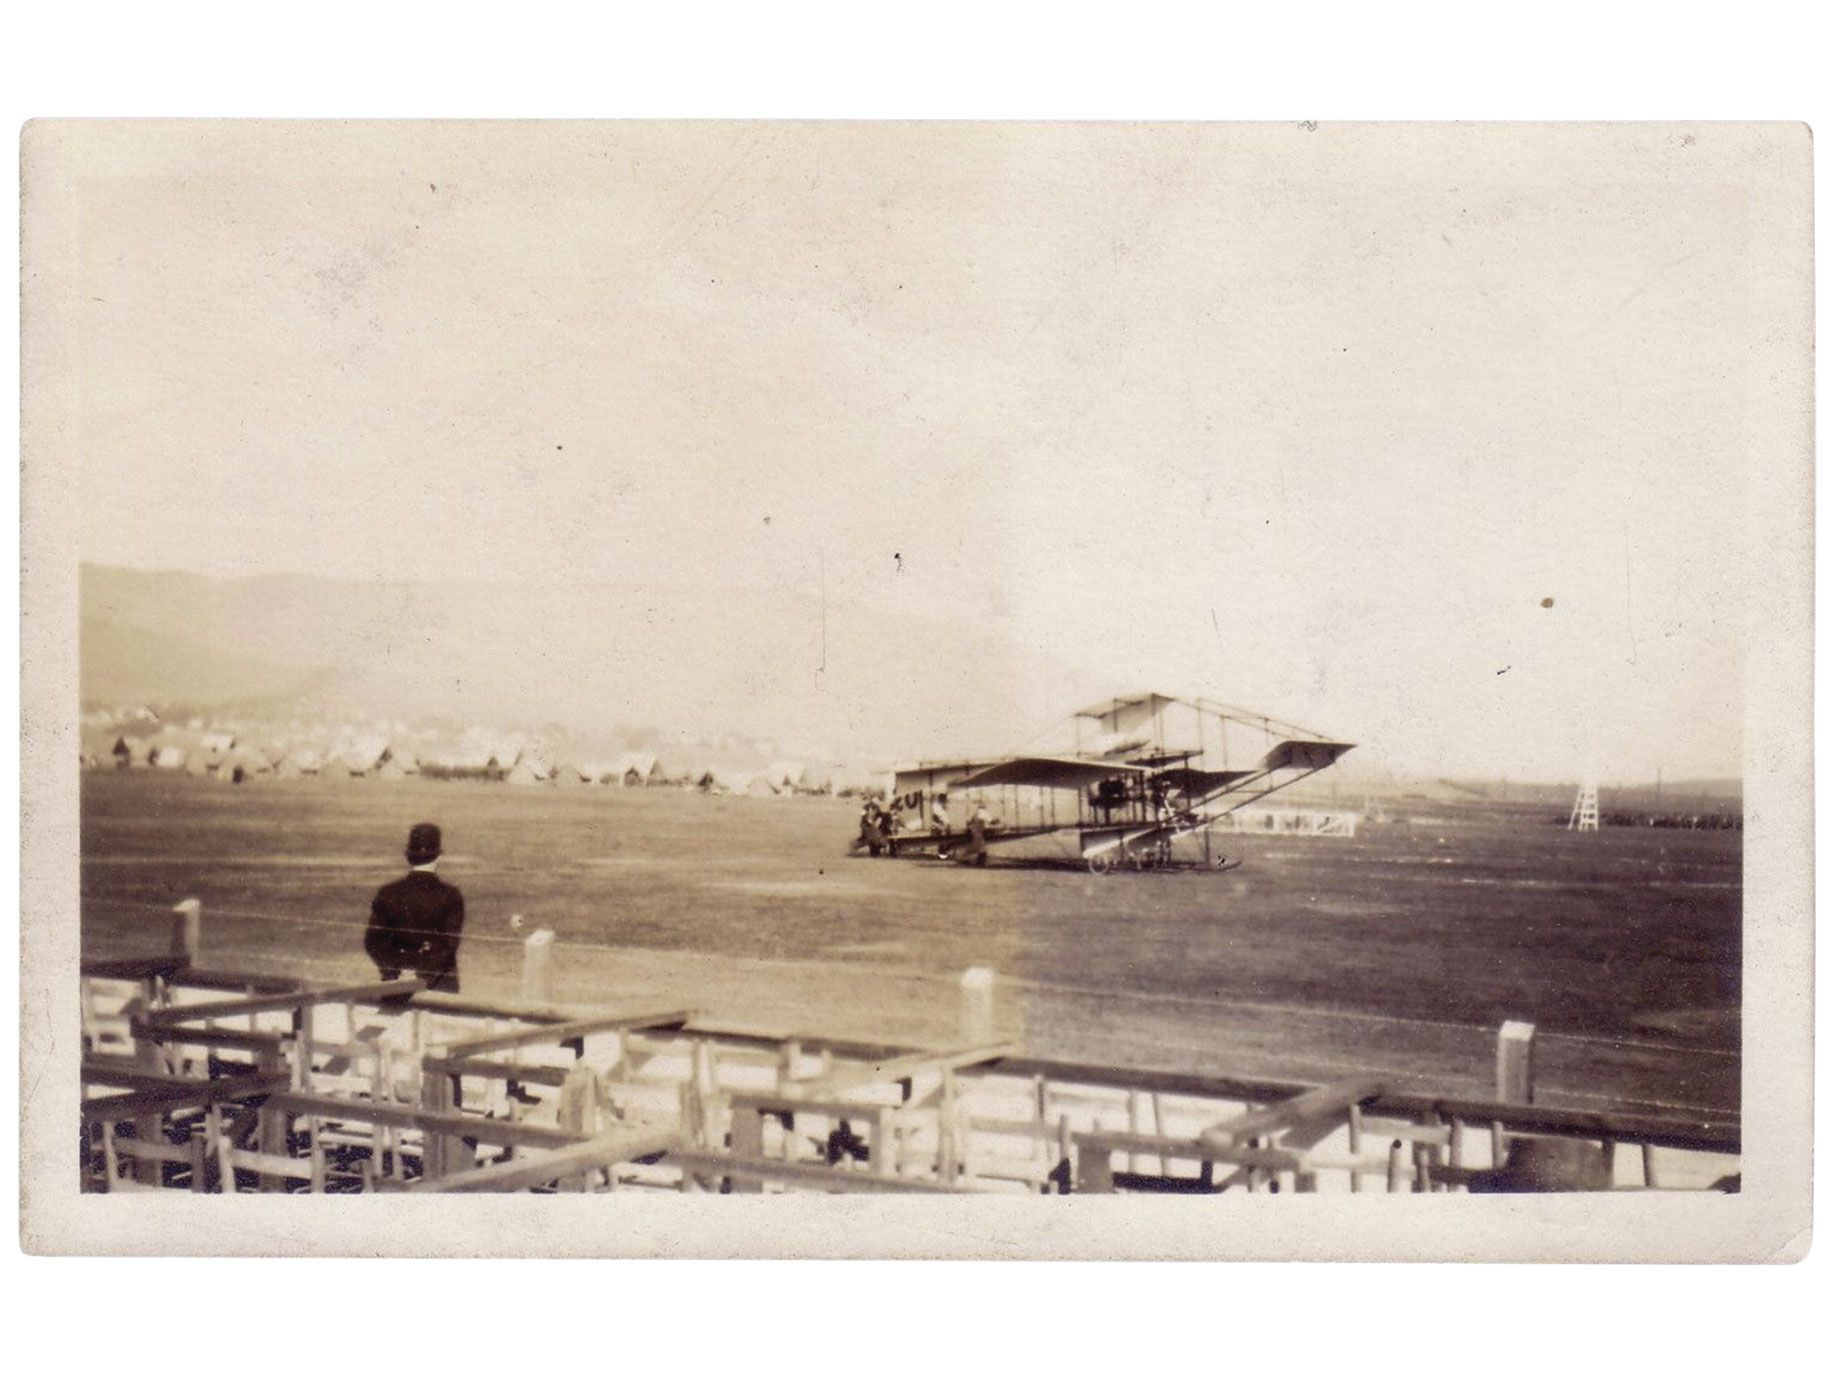 A rare photo of Feng's airplane in Oakland, circa 1909.